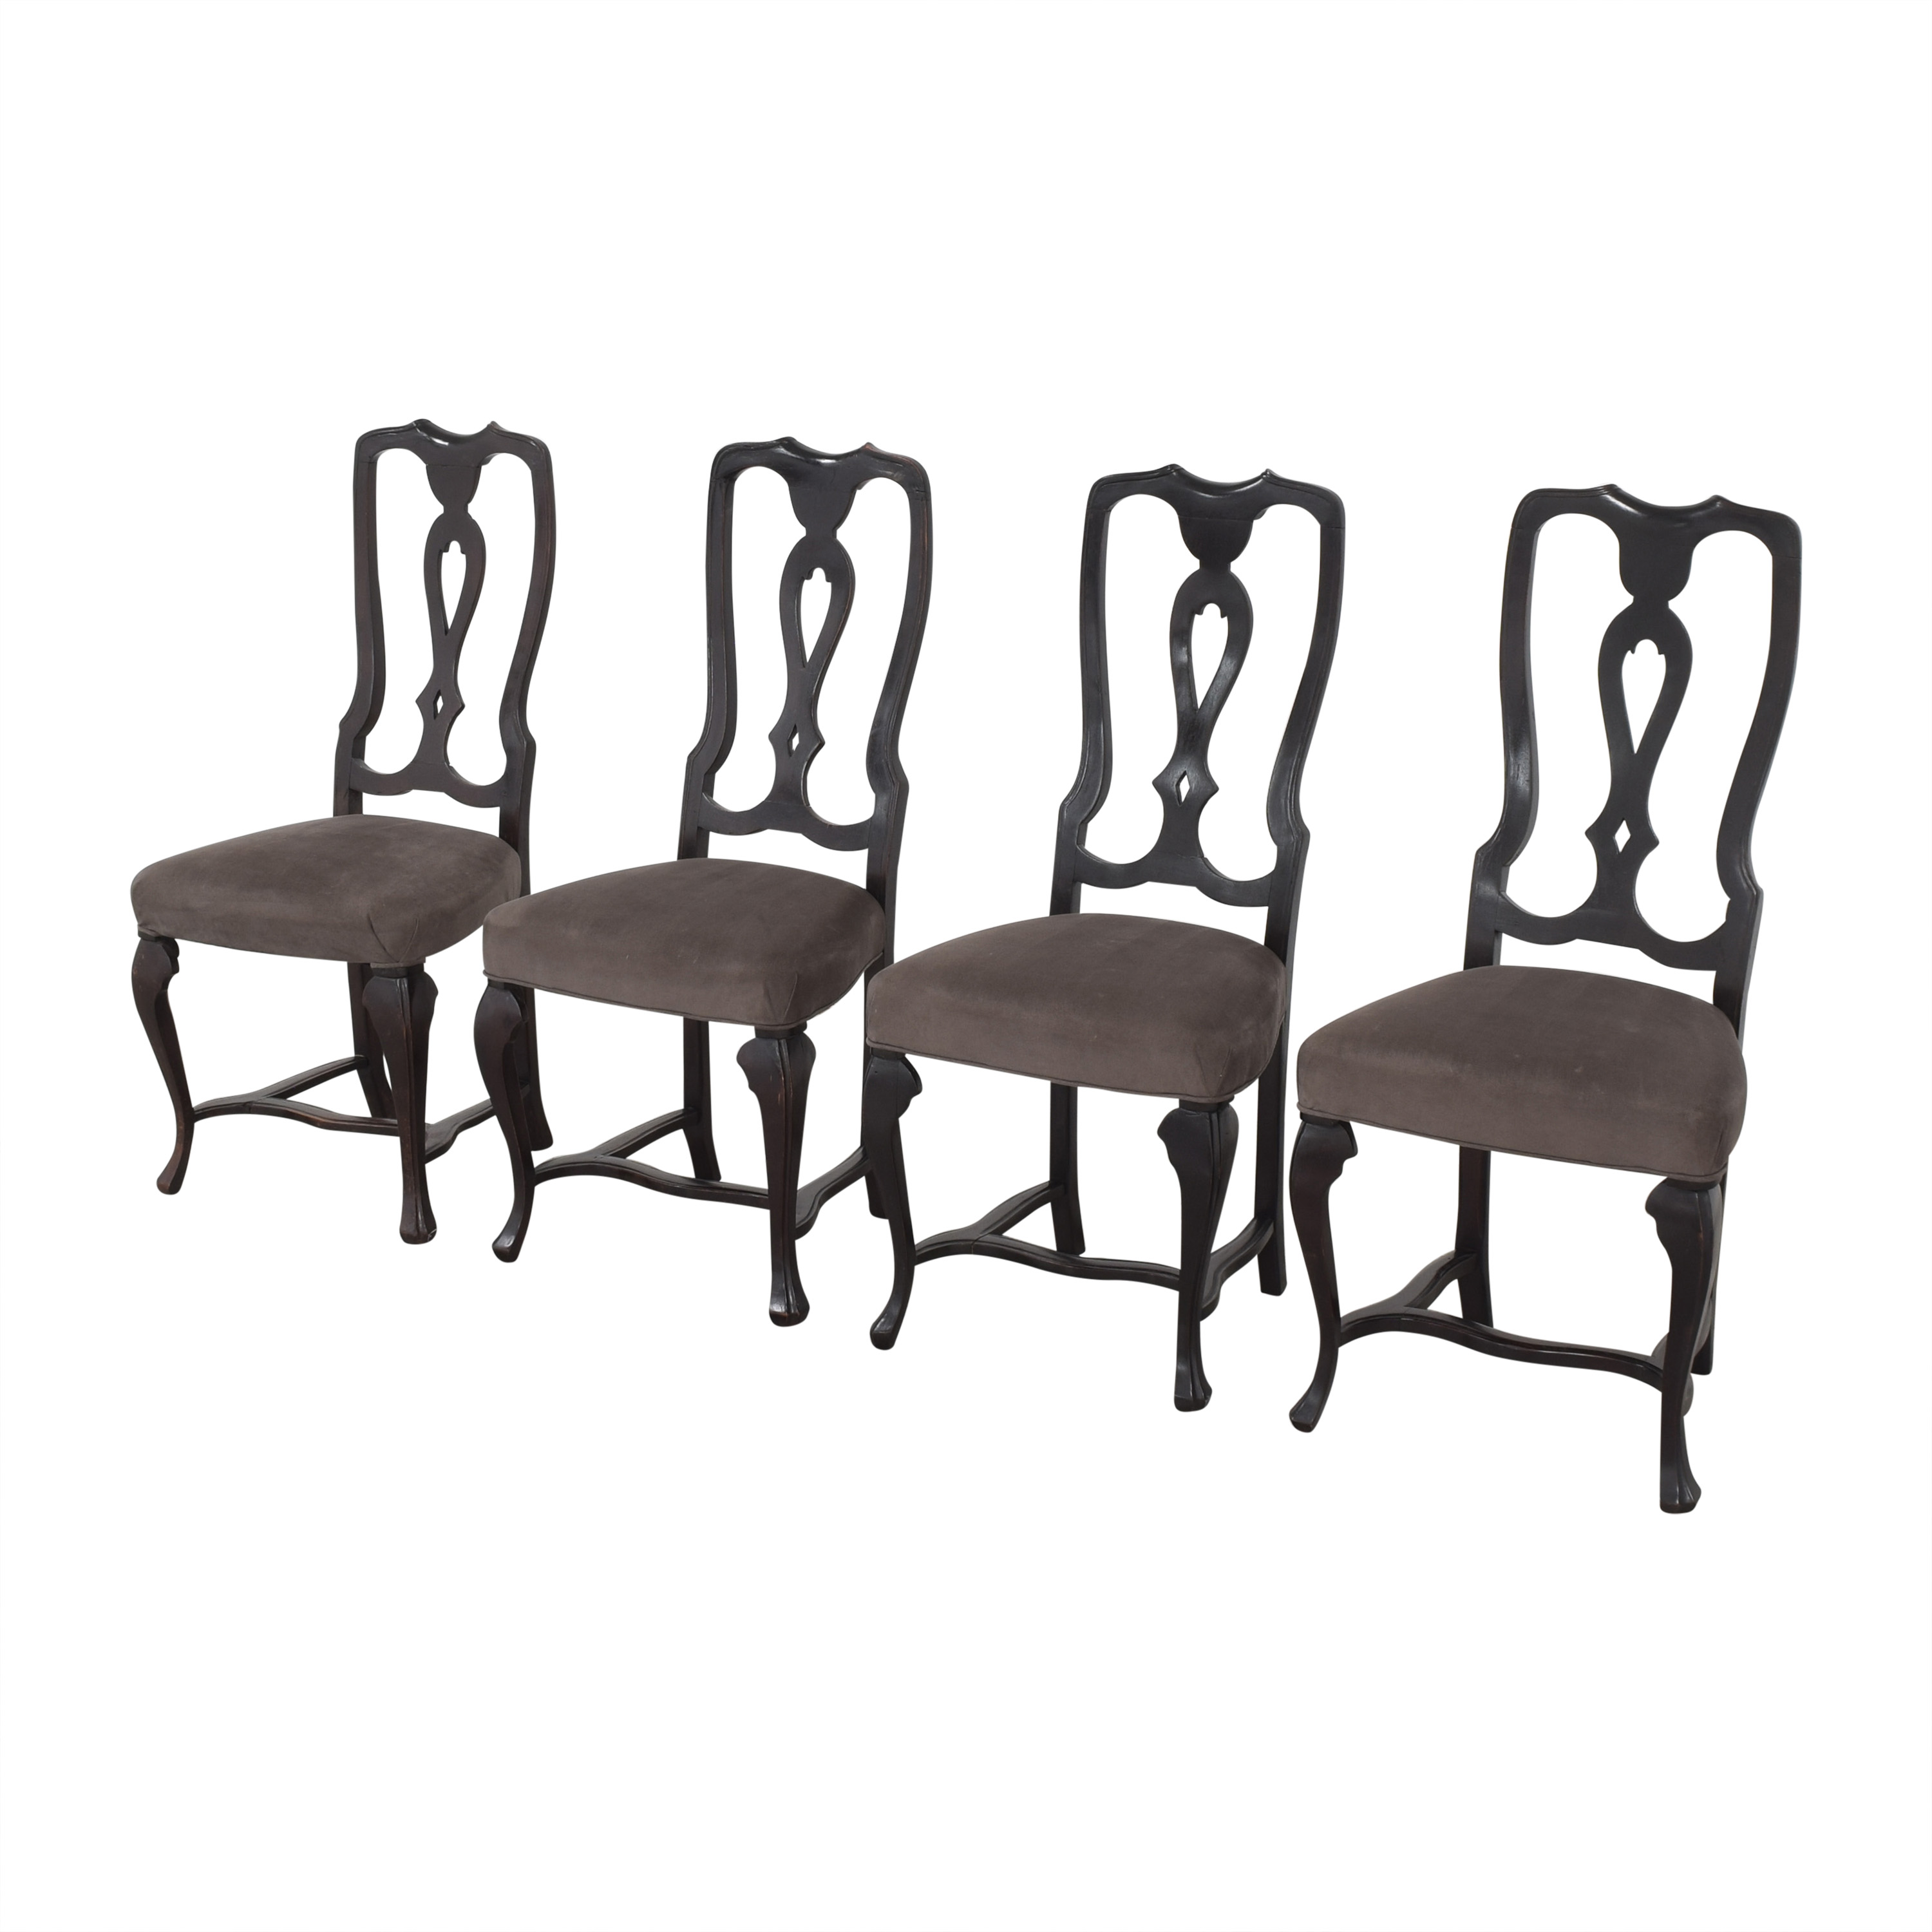 Antique Upholstered Dining Chairs / Chairs